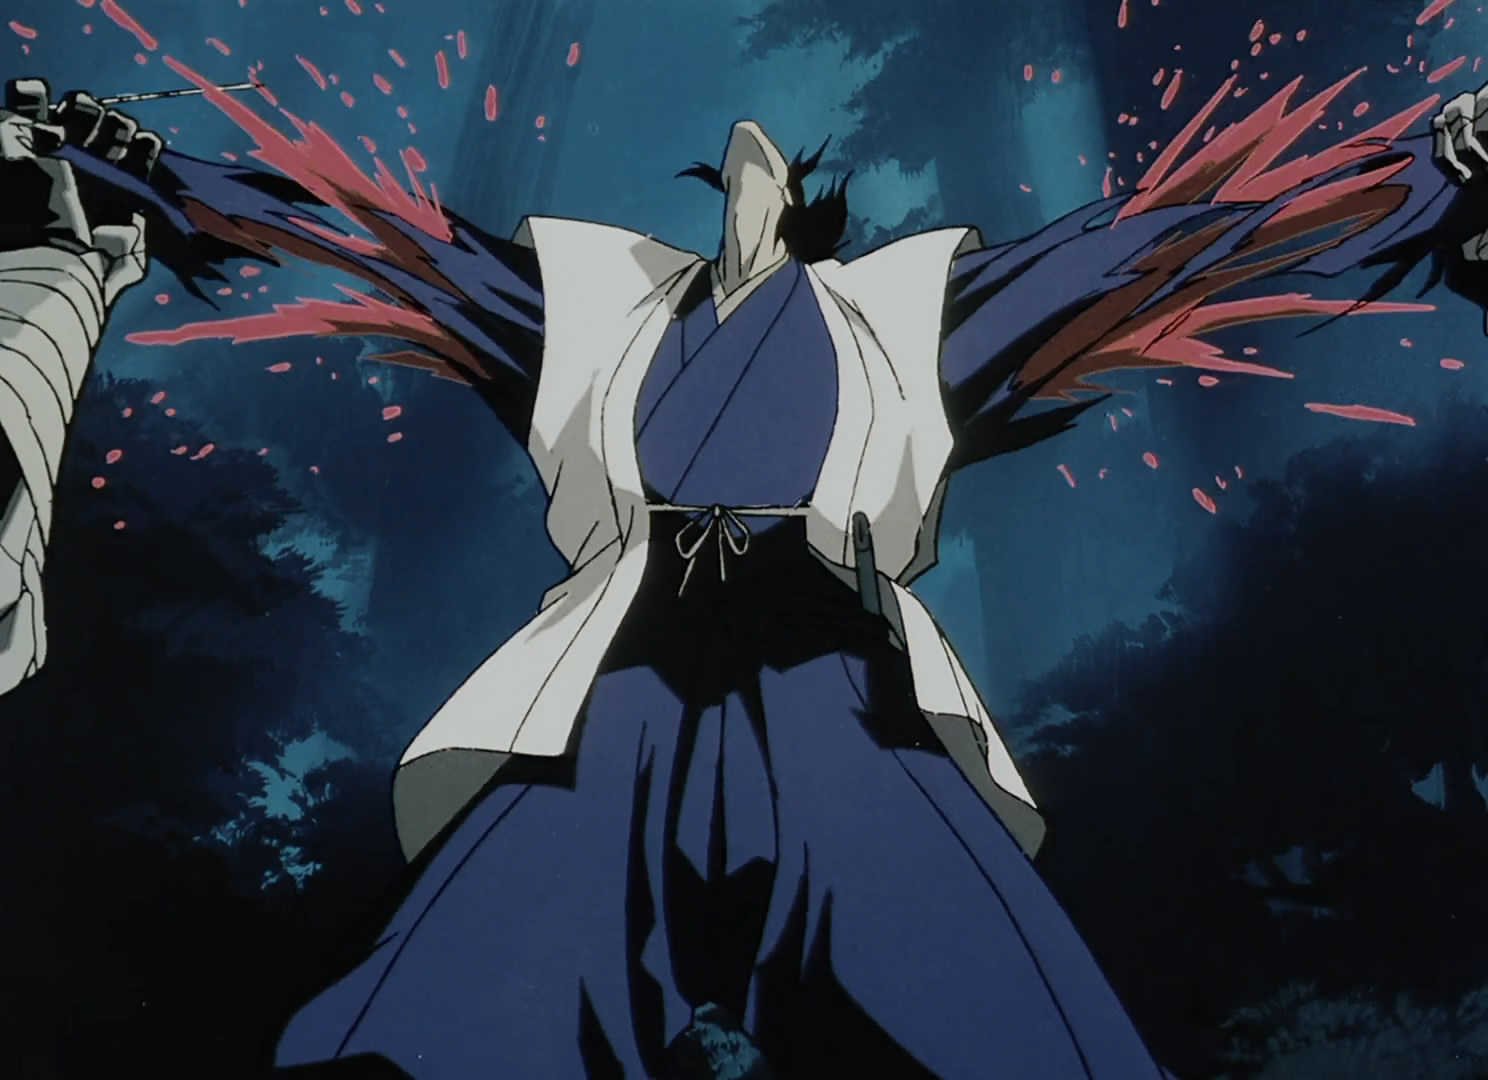 The ninja scroll movie